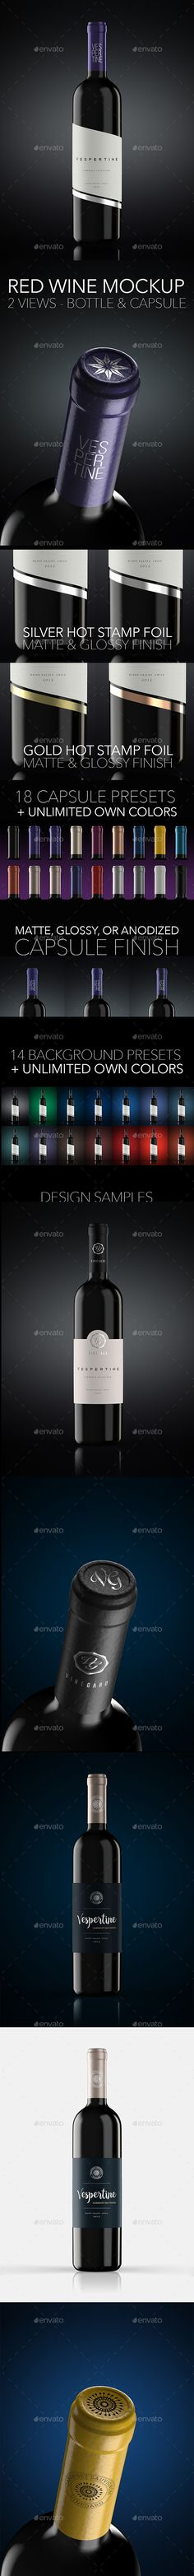 Red Wine Bottle Mock Up by vespertine_pl Vespertine mockup is designed to make your life easier, improve workflow, and rise your projects presentations to the higher level